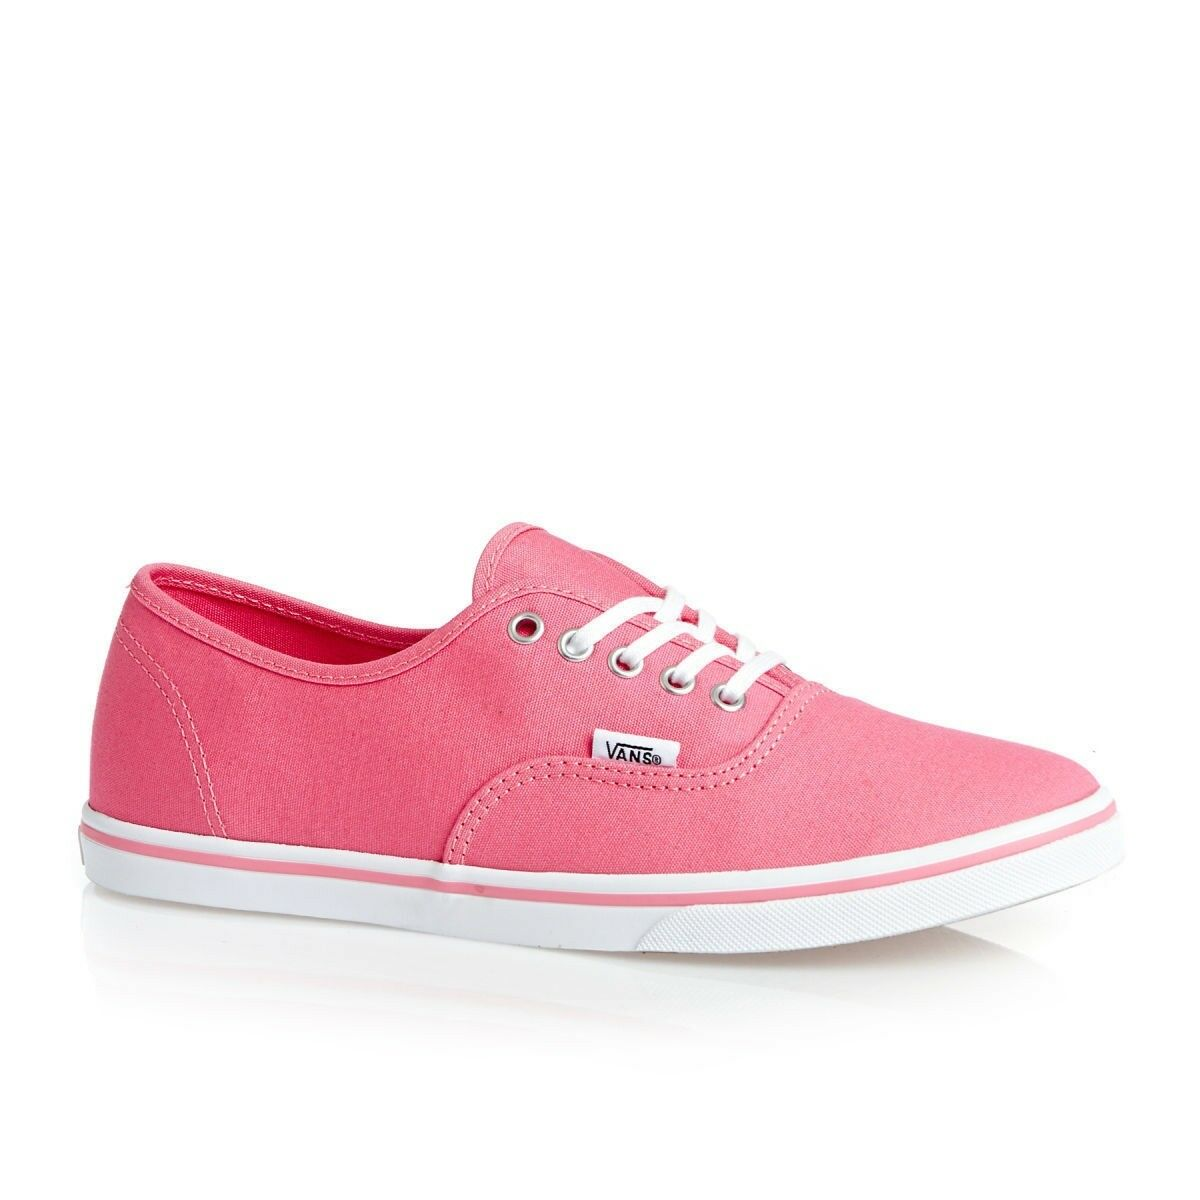 VANS Authentic Lo Pro Strawberry Pink True White VN-0XRNGY7 WOMEN'S 10